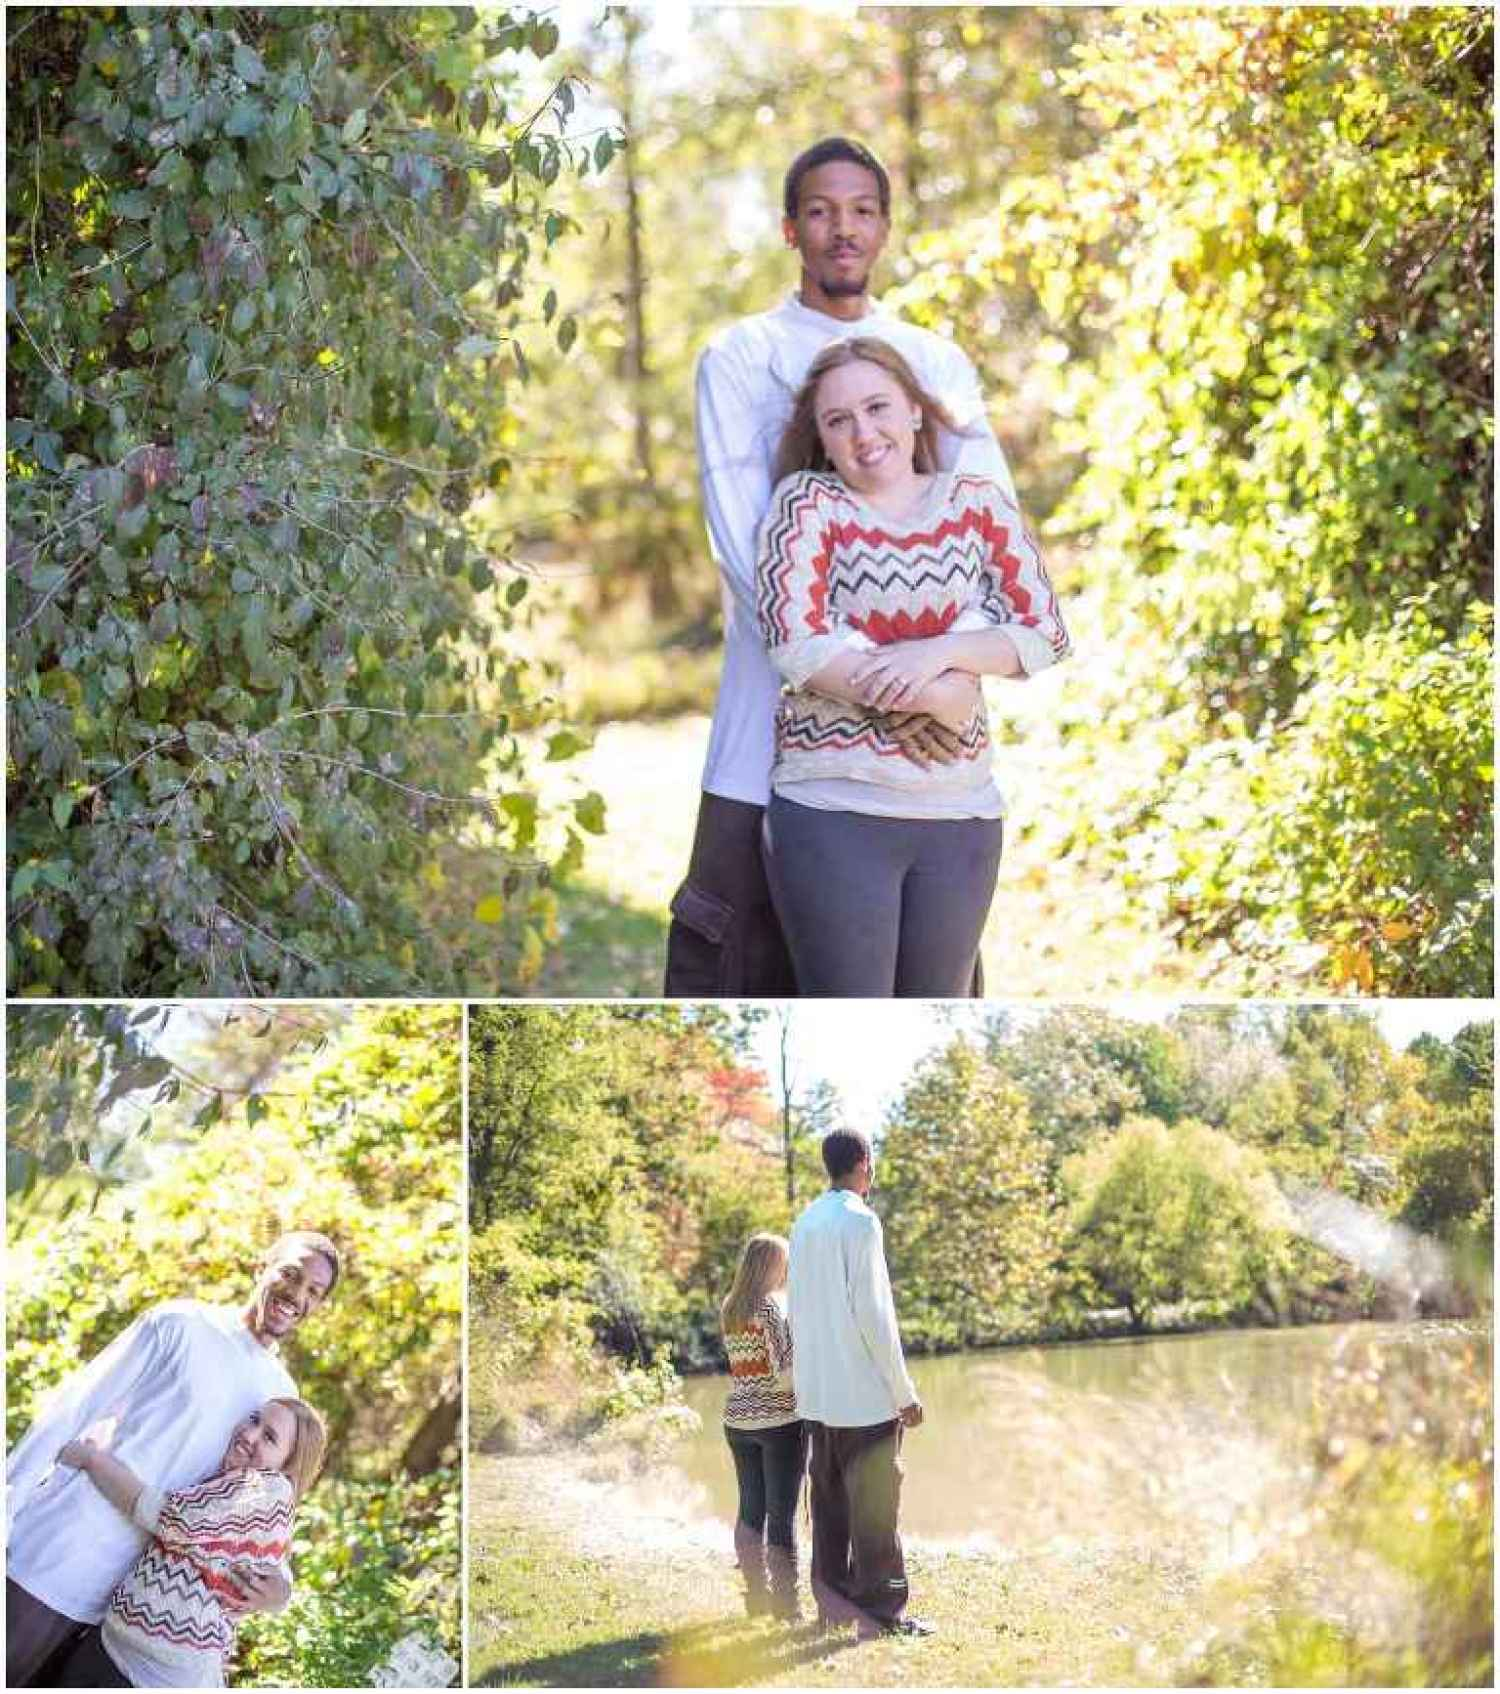 RoneyfieldPhotography_Autumn&MarcusEngagement_001